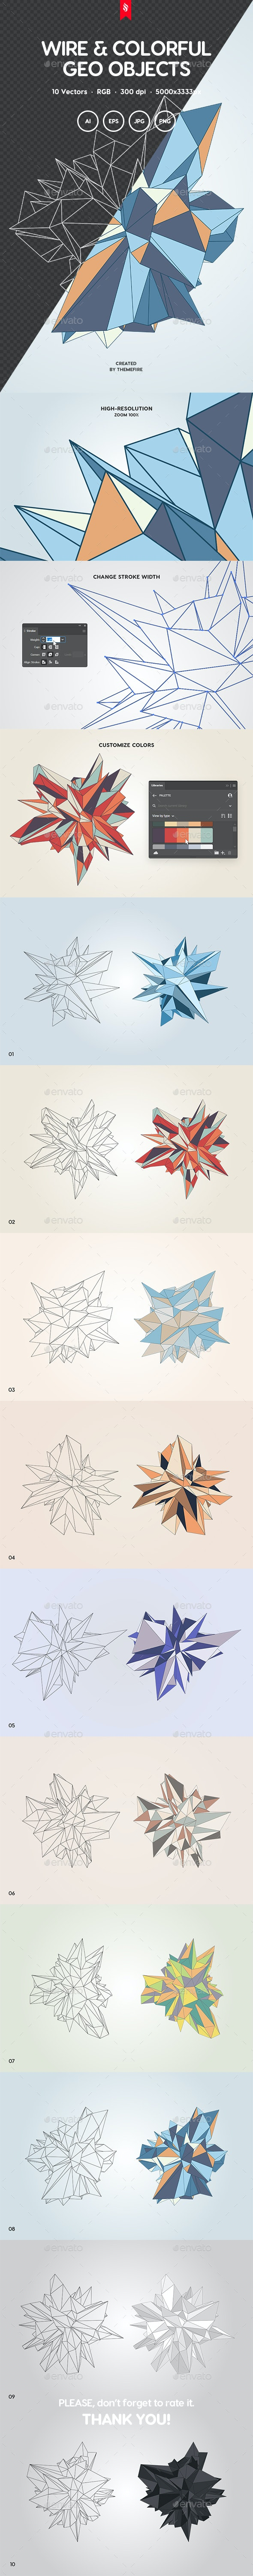 Wireframe and Colorful Polygon Objects - Abstract Backgrounds